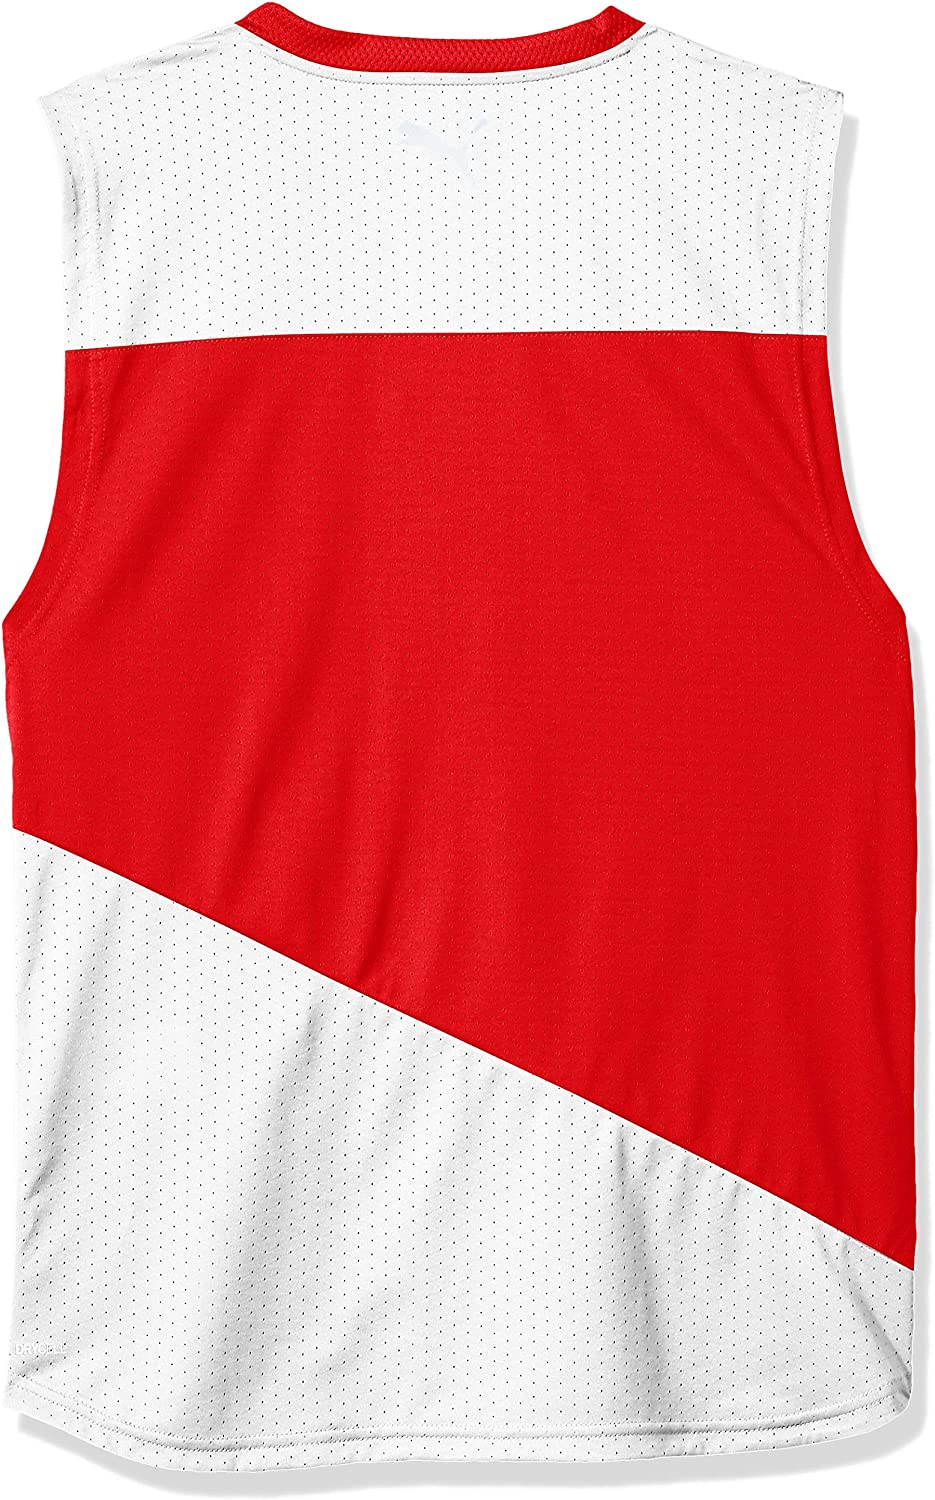 PUMA Mens A.c.e Sleeveless Tee